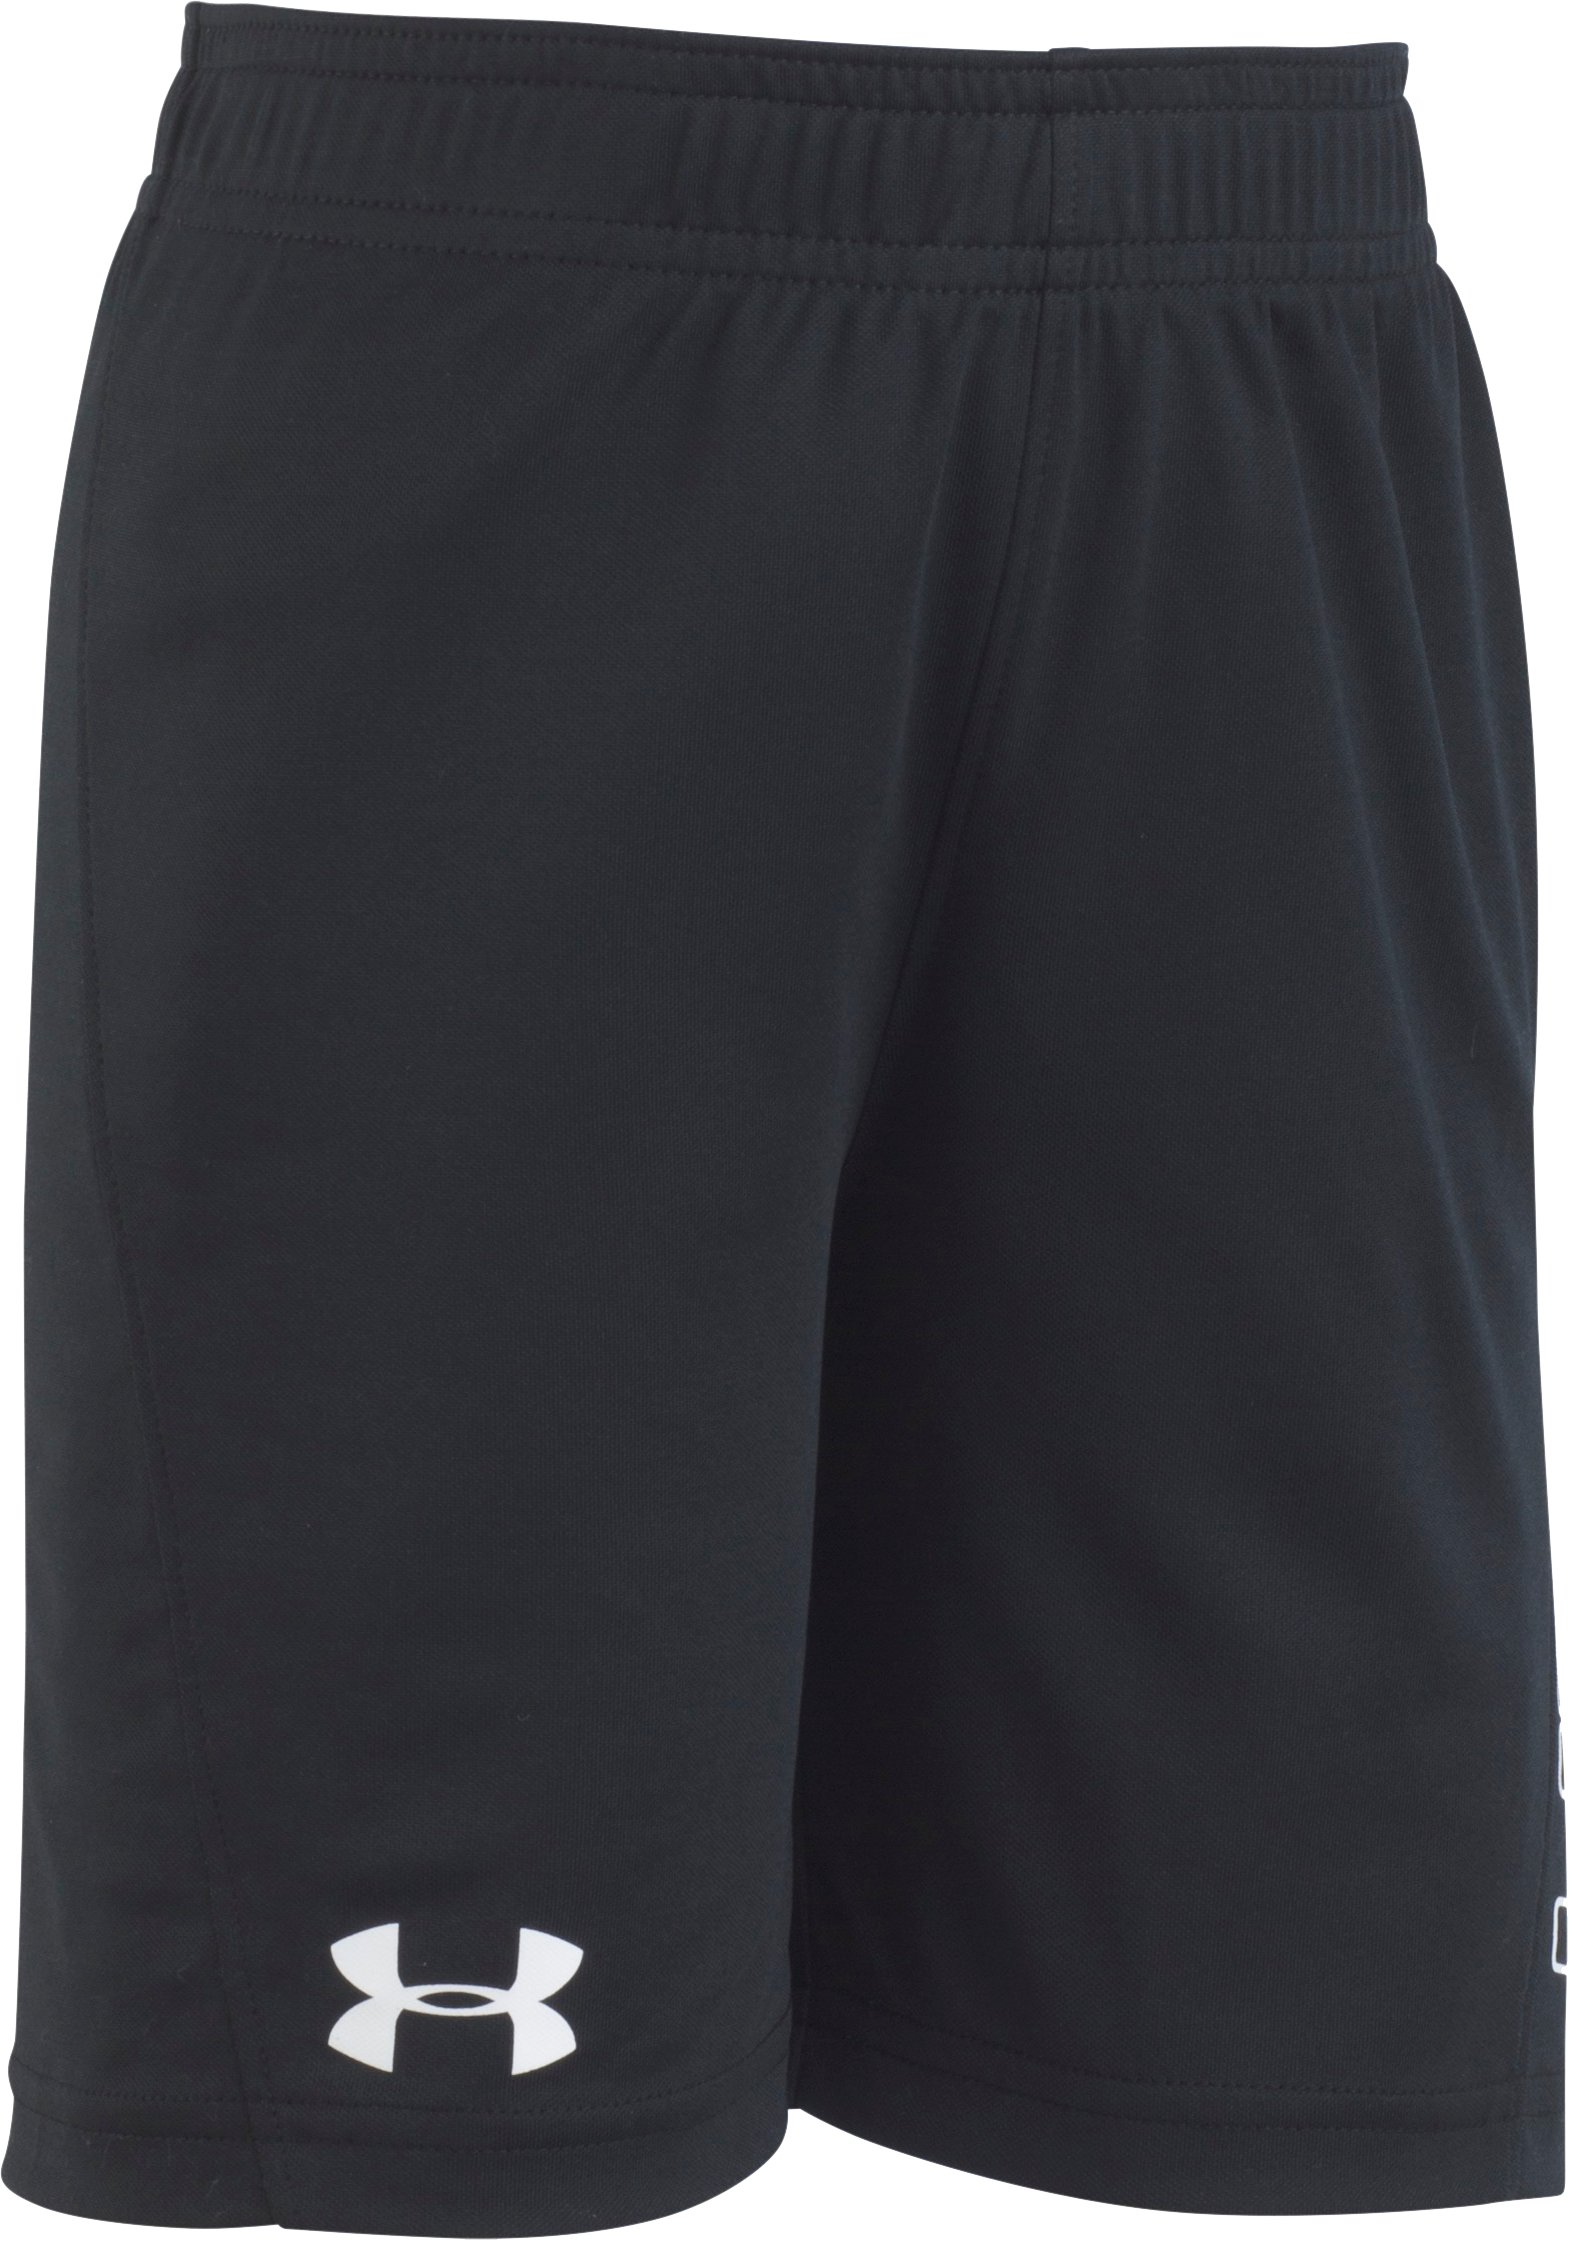 Boys' Pre-School UA Kick Off Solid Shorts , Black , Laydown